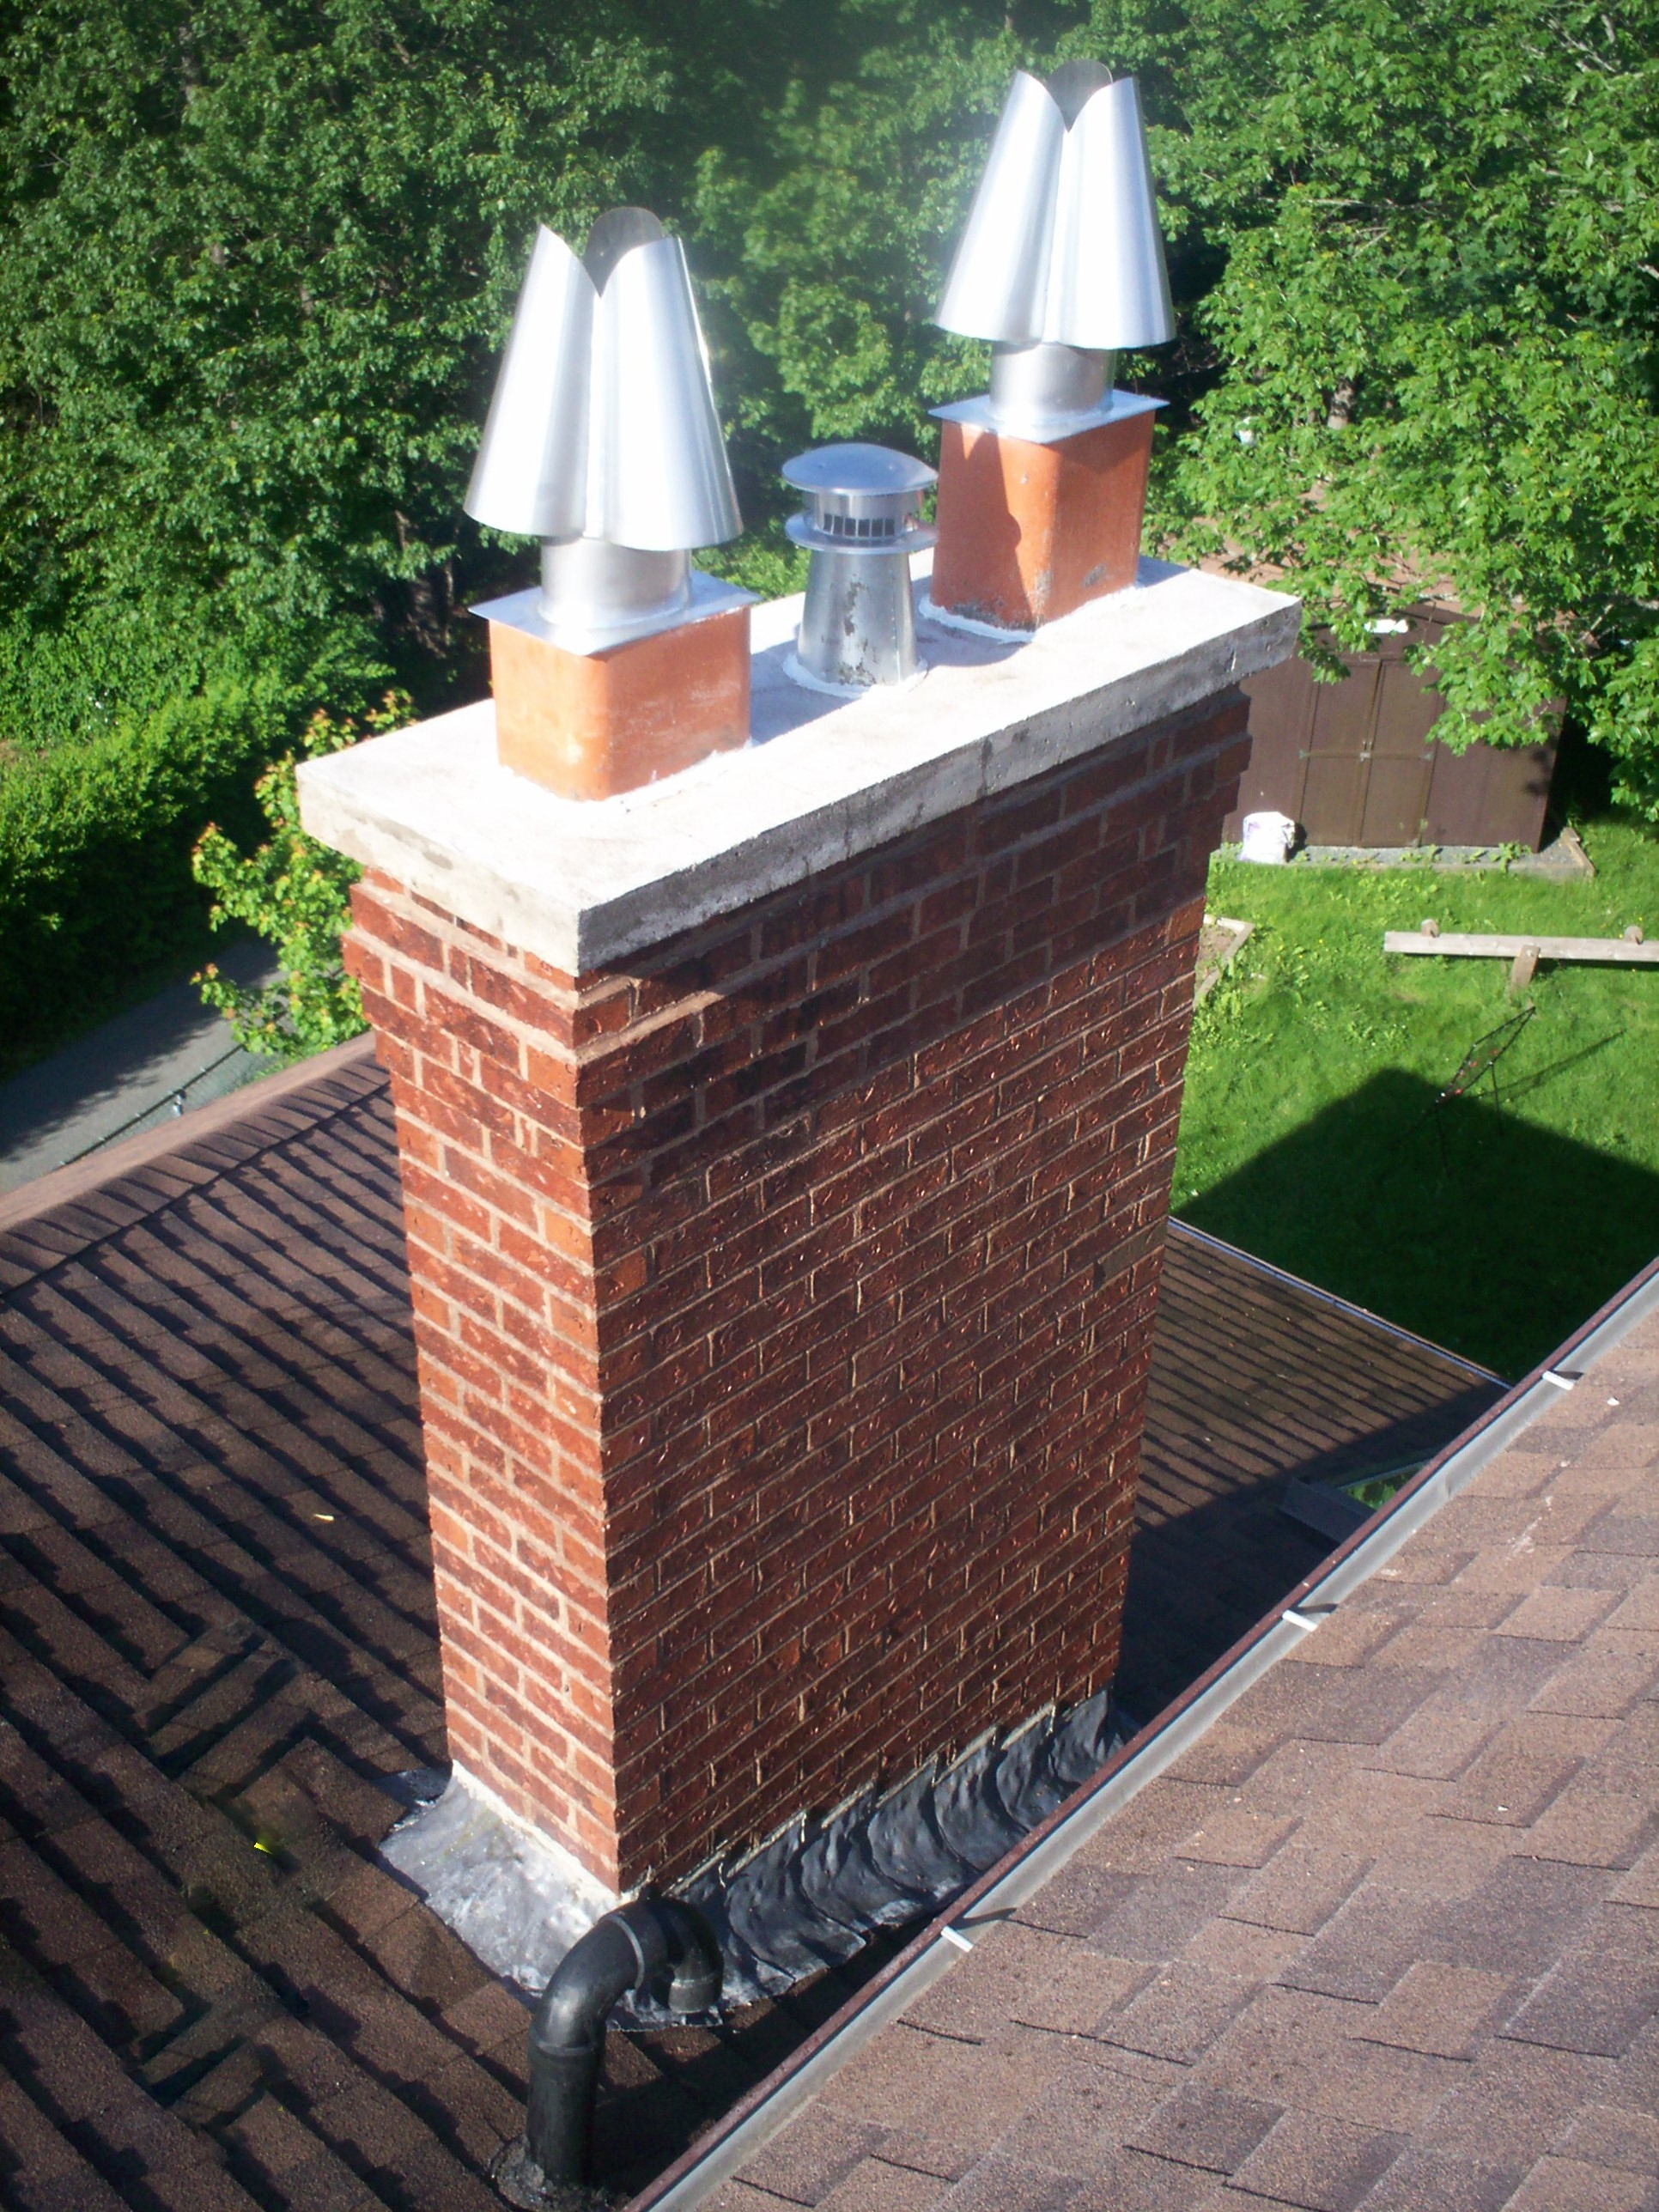 image of chimney repair-masonry chimney repair services completed in Halifax-Dartmouth Regional Municipality, NS by Pro Chimney Services based in Halifax, NS servicing all of the Halifax-Dartmouth Regional Municipality, Bedford, Sackville, Mount Uniacke, Windsor, Hantsport , Wolfville, Kentville, Chester, Mahone Bay, Lunenburg, Bridgewater, Liverpool, Fall River, Wellington, Enfield, Elmsdale, Brookfield, Truro, Musquodoboit Harbour & surrounding areas.